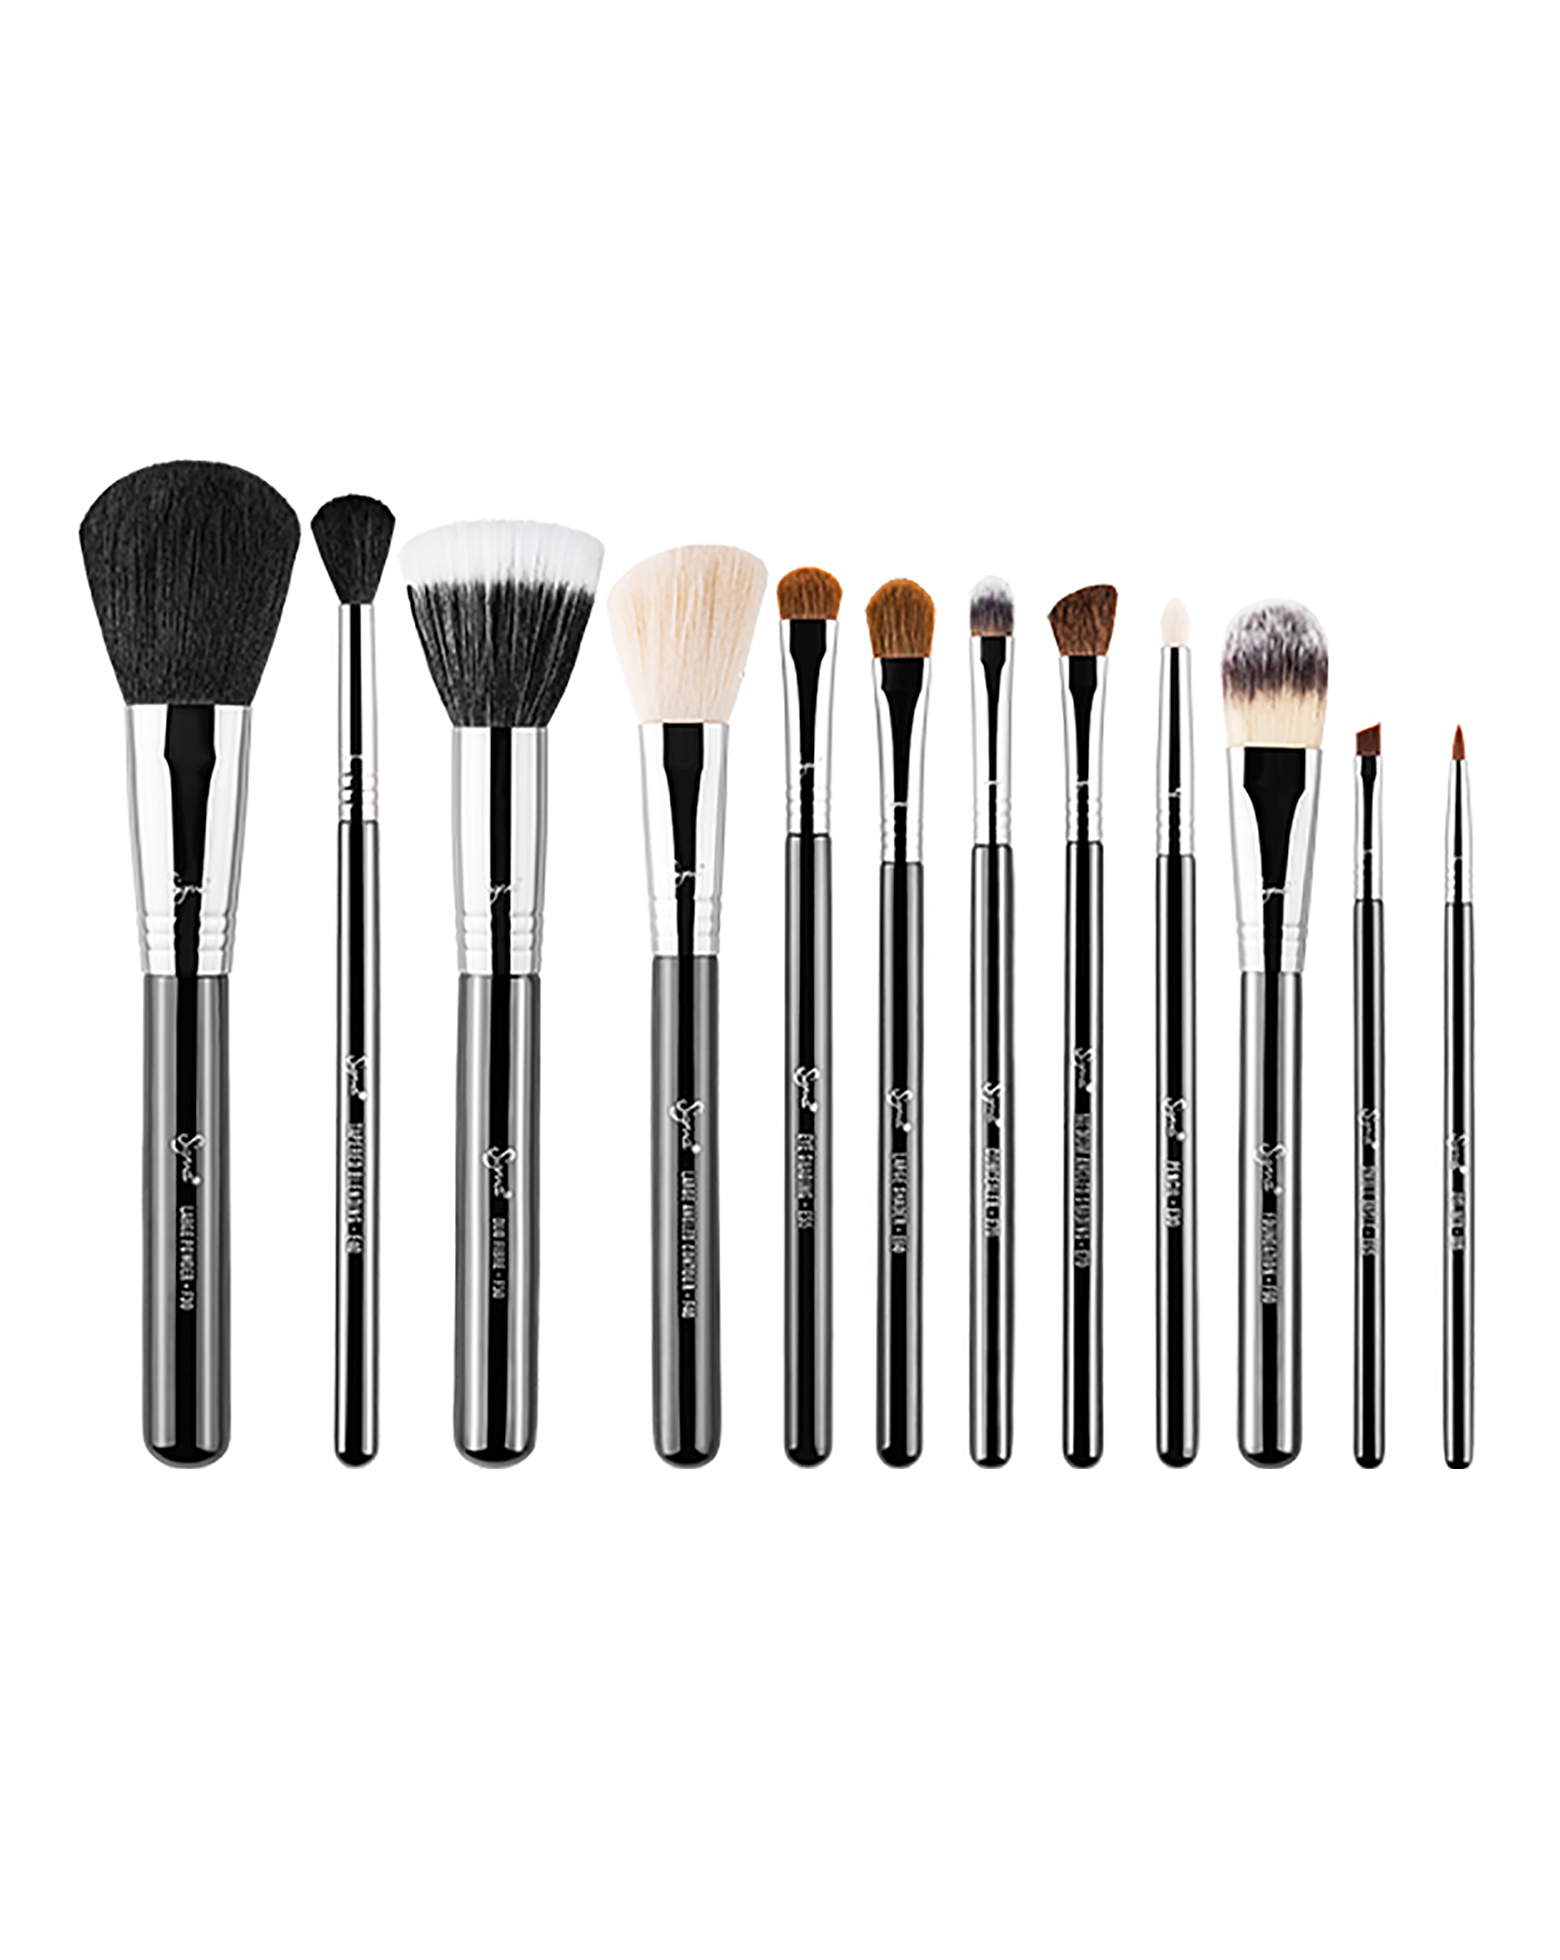 Sigma Beauty Best Of Sigma Beauty Brush Kit 122 Value: Essential Kit By Sigma Beauty